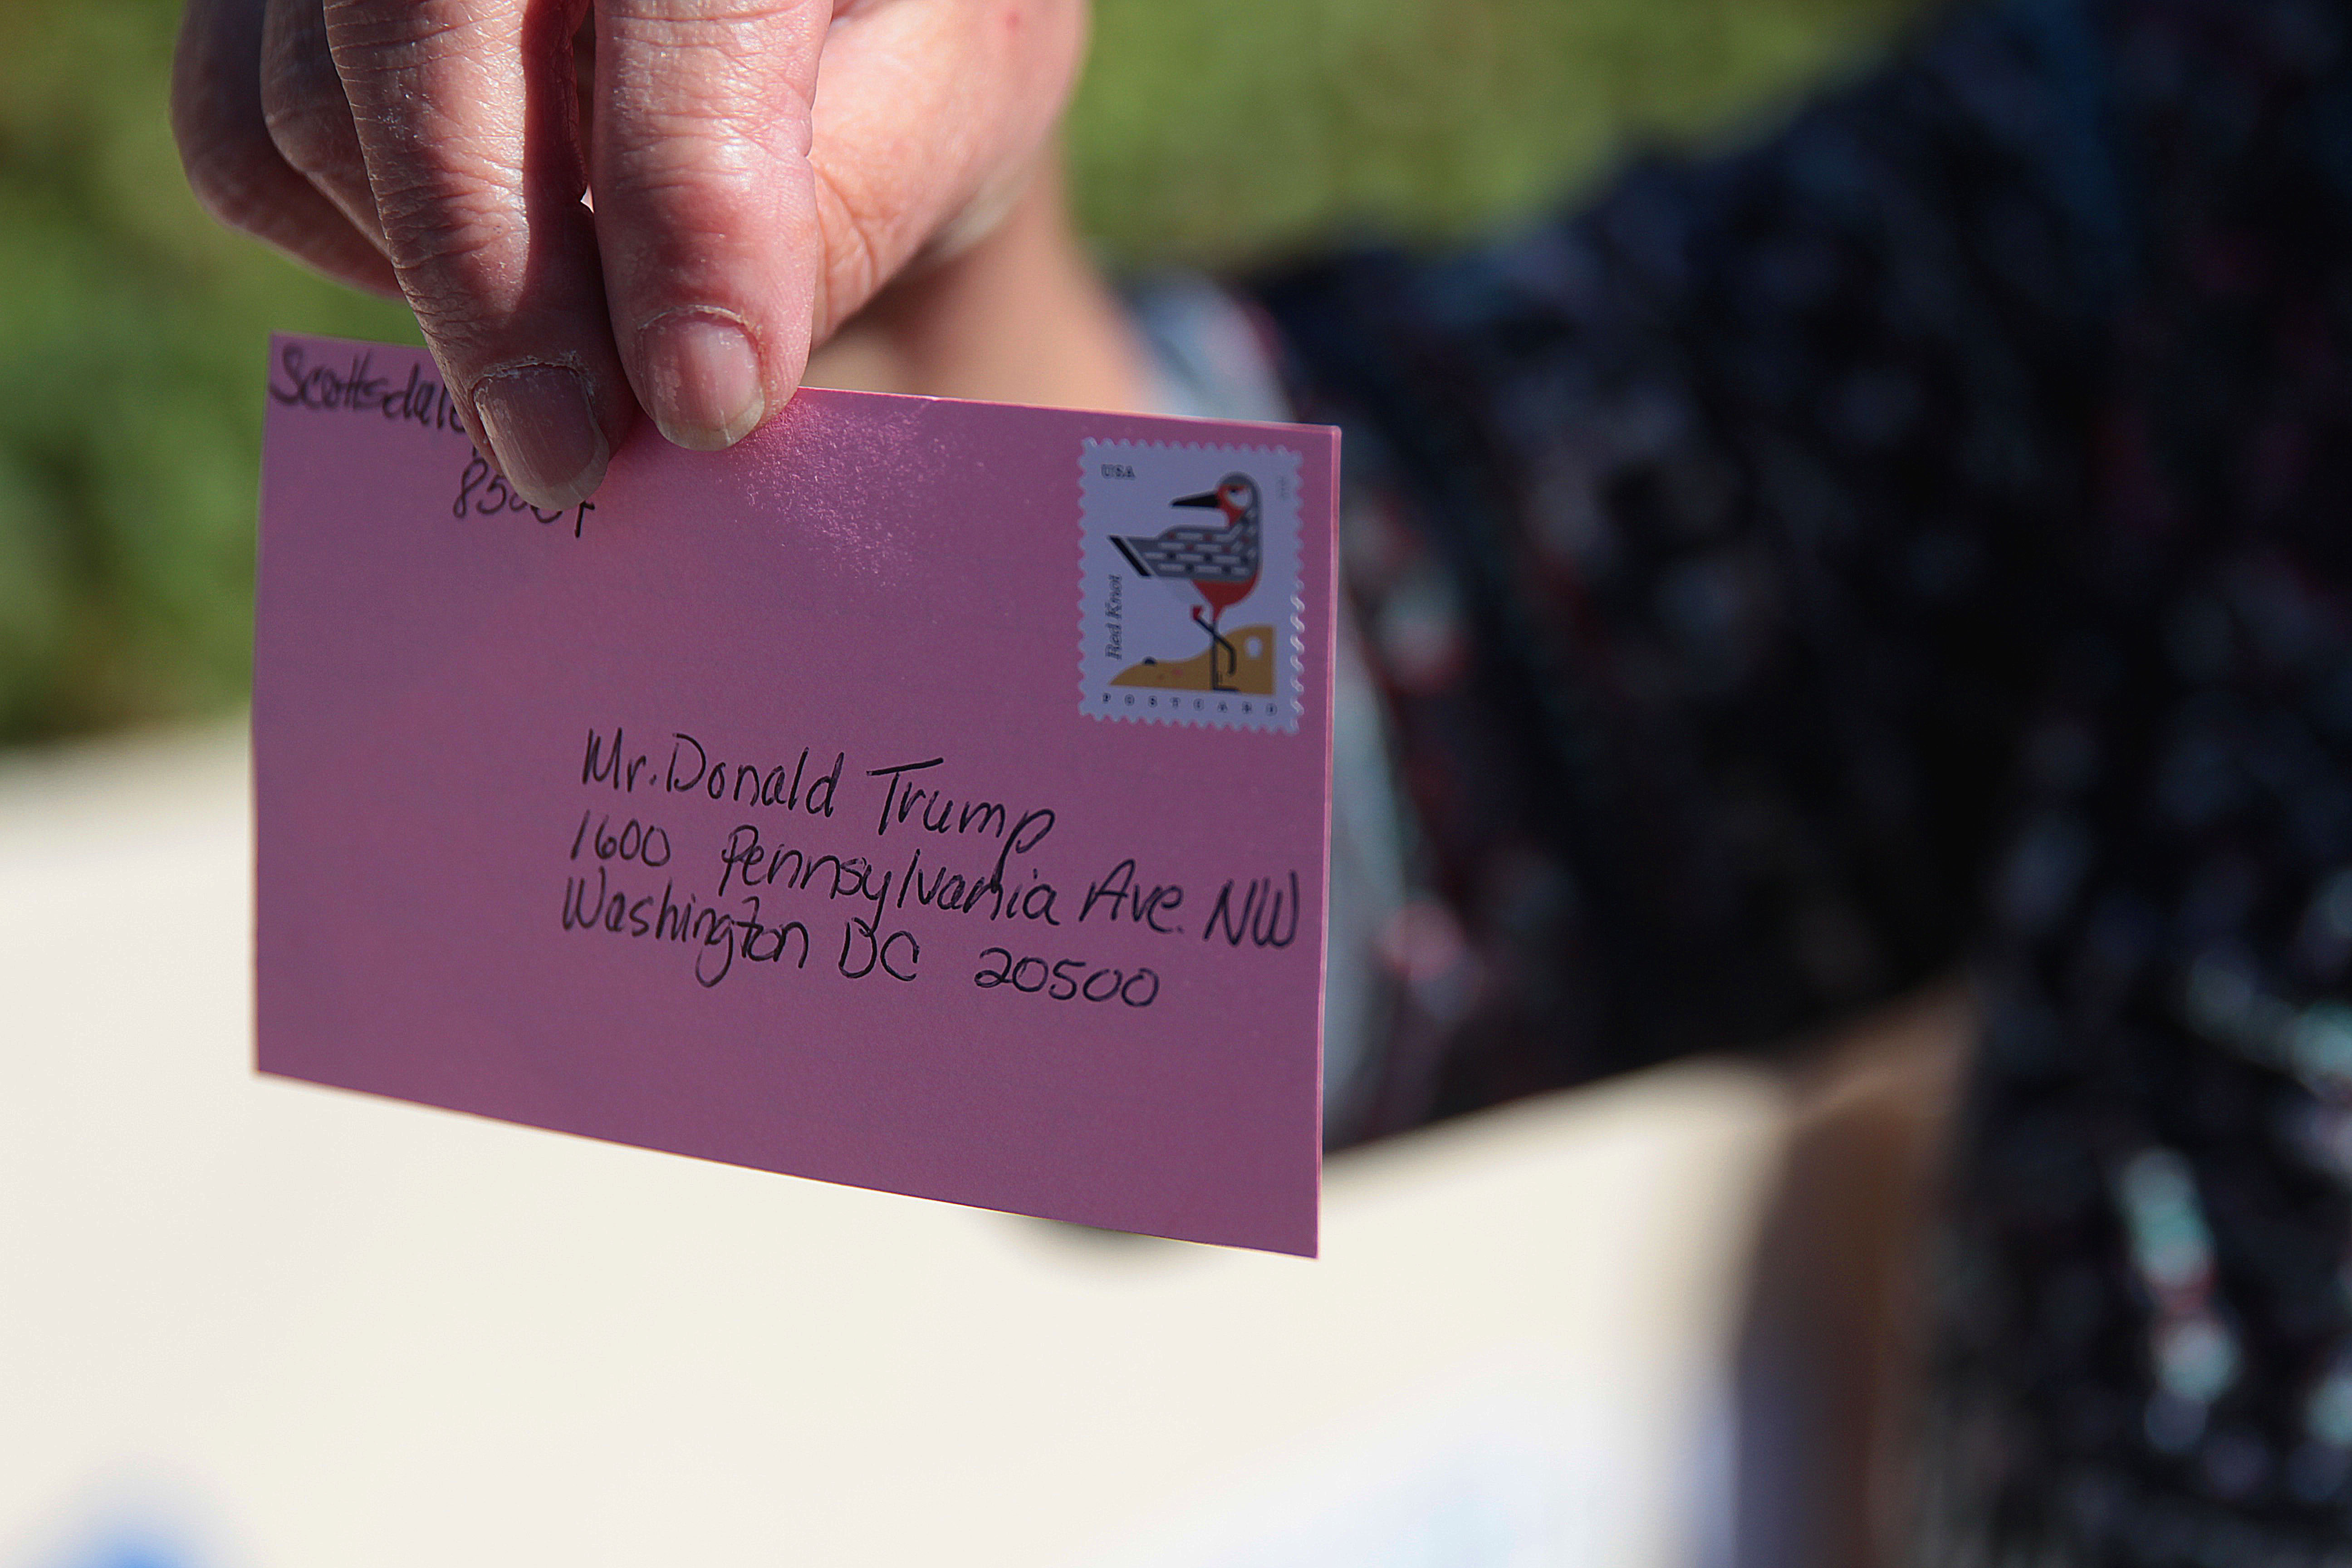 The Puente Human Rights Movement is encouraging people to send pink postcards to the White House as a sign of protest. Representatives from Puente hand out cards at an anti-Trump protest outside Sen. Jeff Flake's office on February 7, 2017 in central Phoenix. (Photo taken by Taryn Martin/Cronkite News)